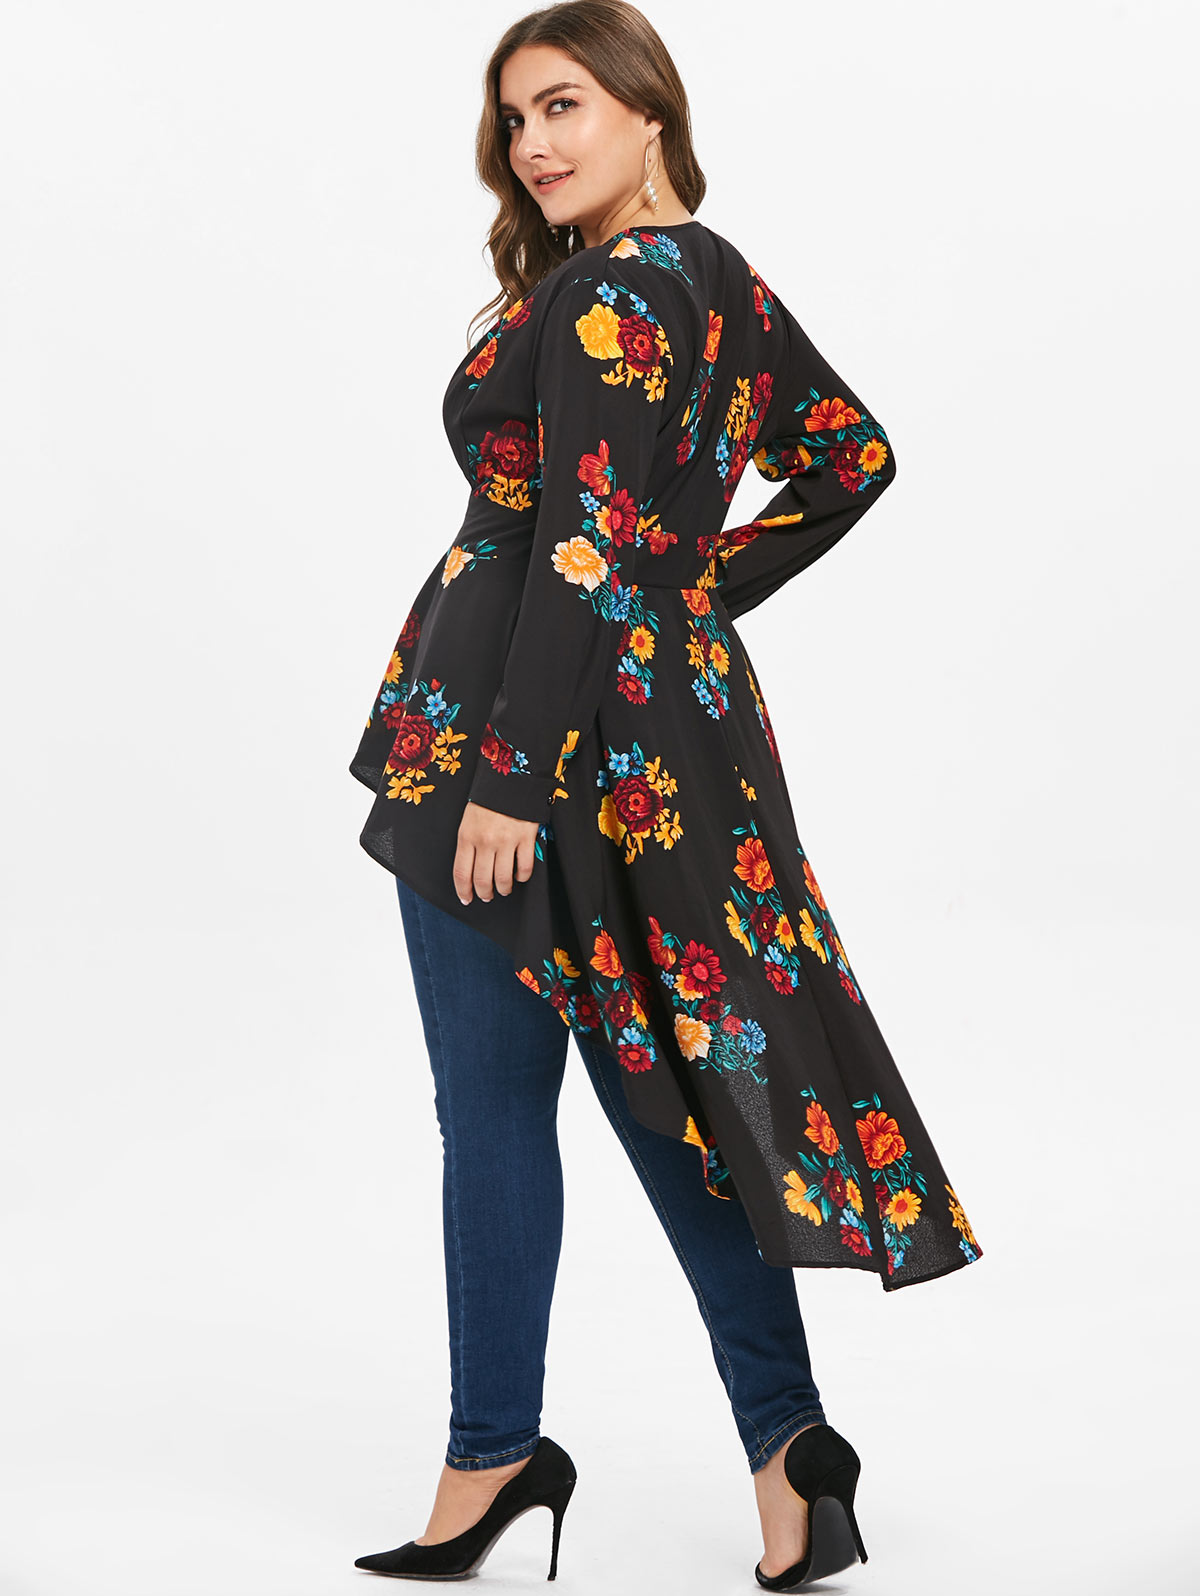 7cef850ce1677 Wipalo Plus Size Plunging Neck High Low Floral Maxi Blouse Autumn Long  Sleeve Asymmetrical Blouse Shirt Women Blusas 5XL Tops-in Blouses   Shirts  from ...